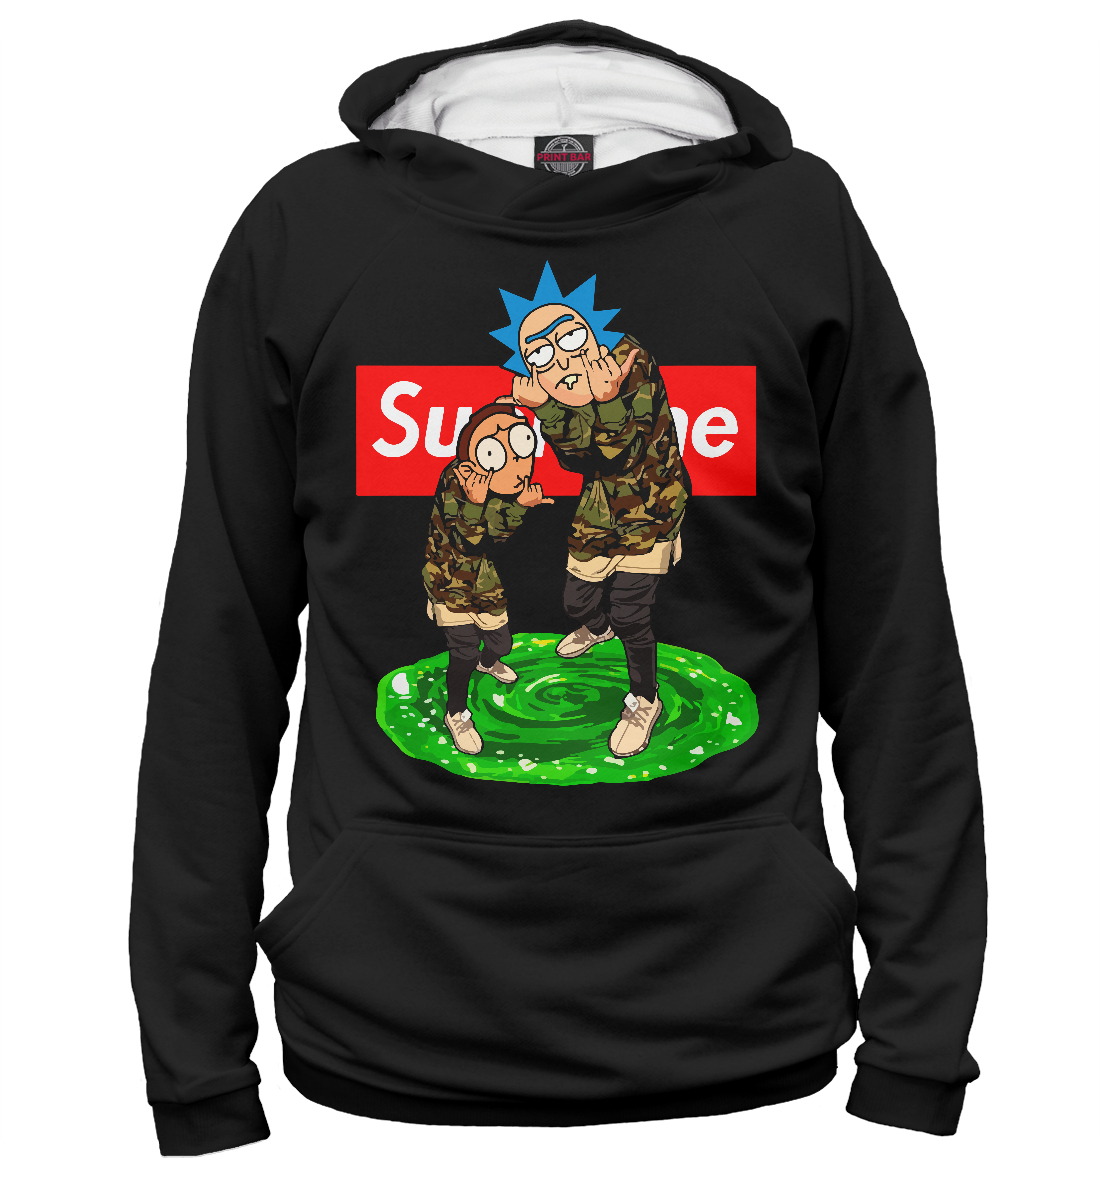 Купить Rick and Morty Supreme, Printbar, Худи, RNM-131050-hud-2